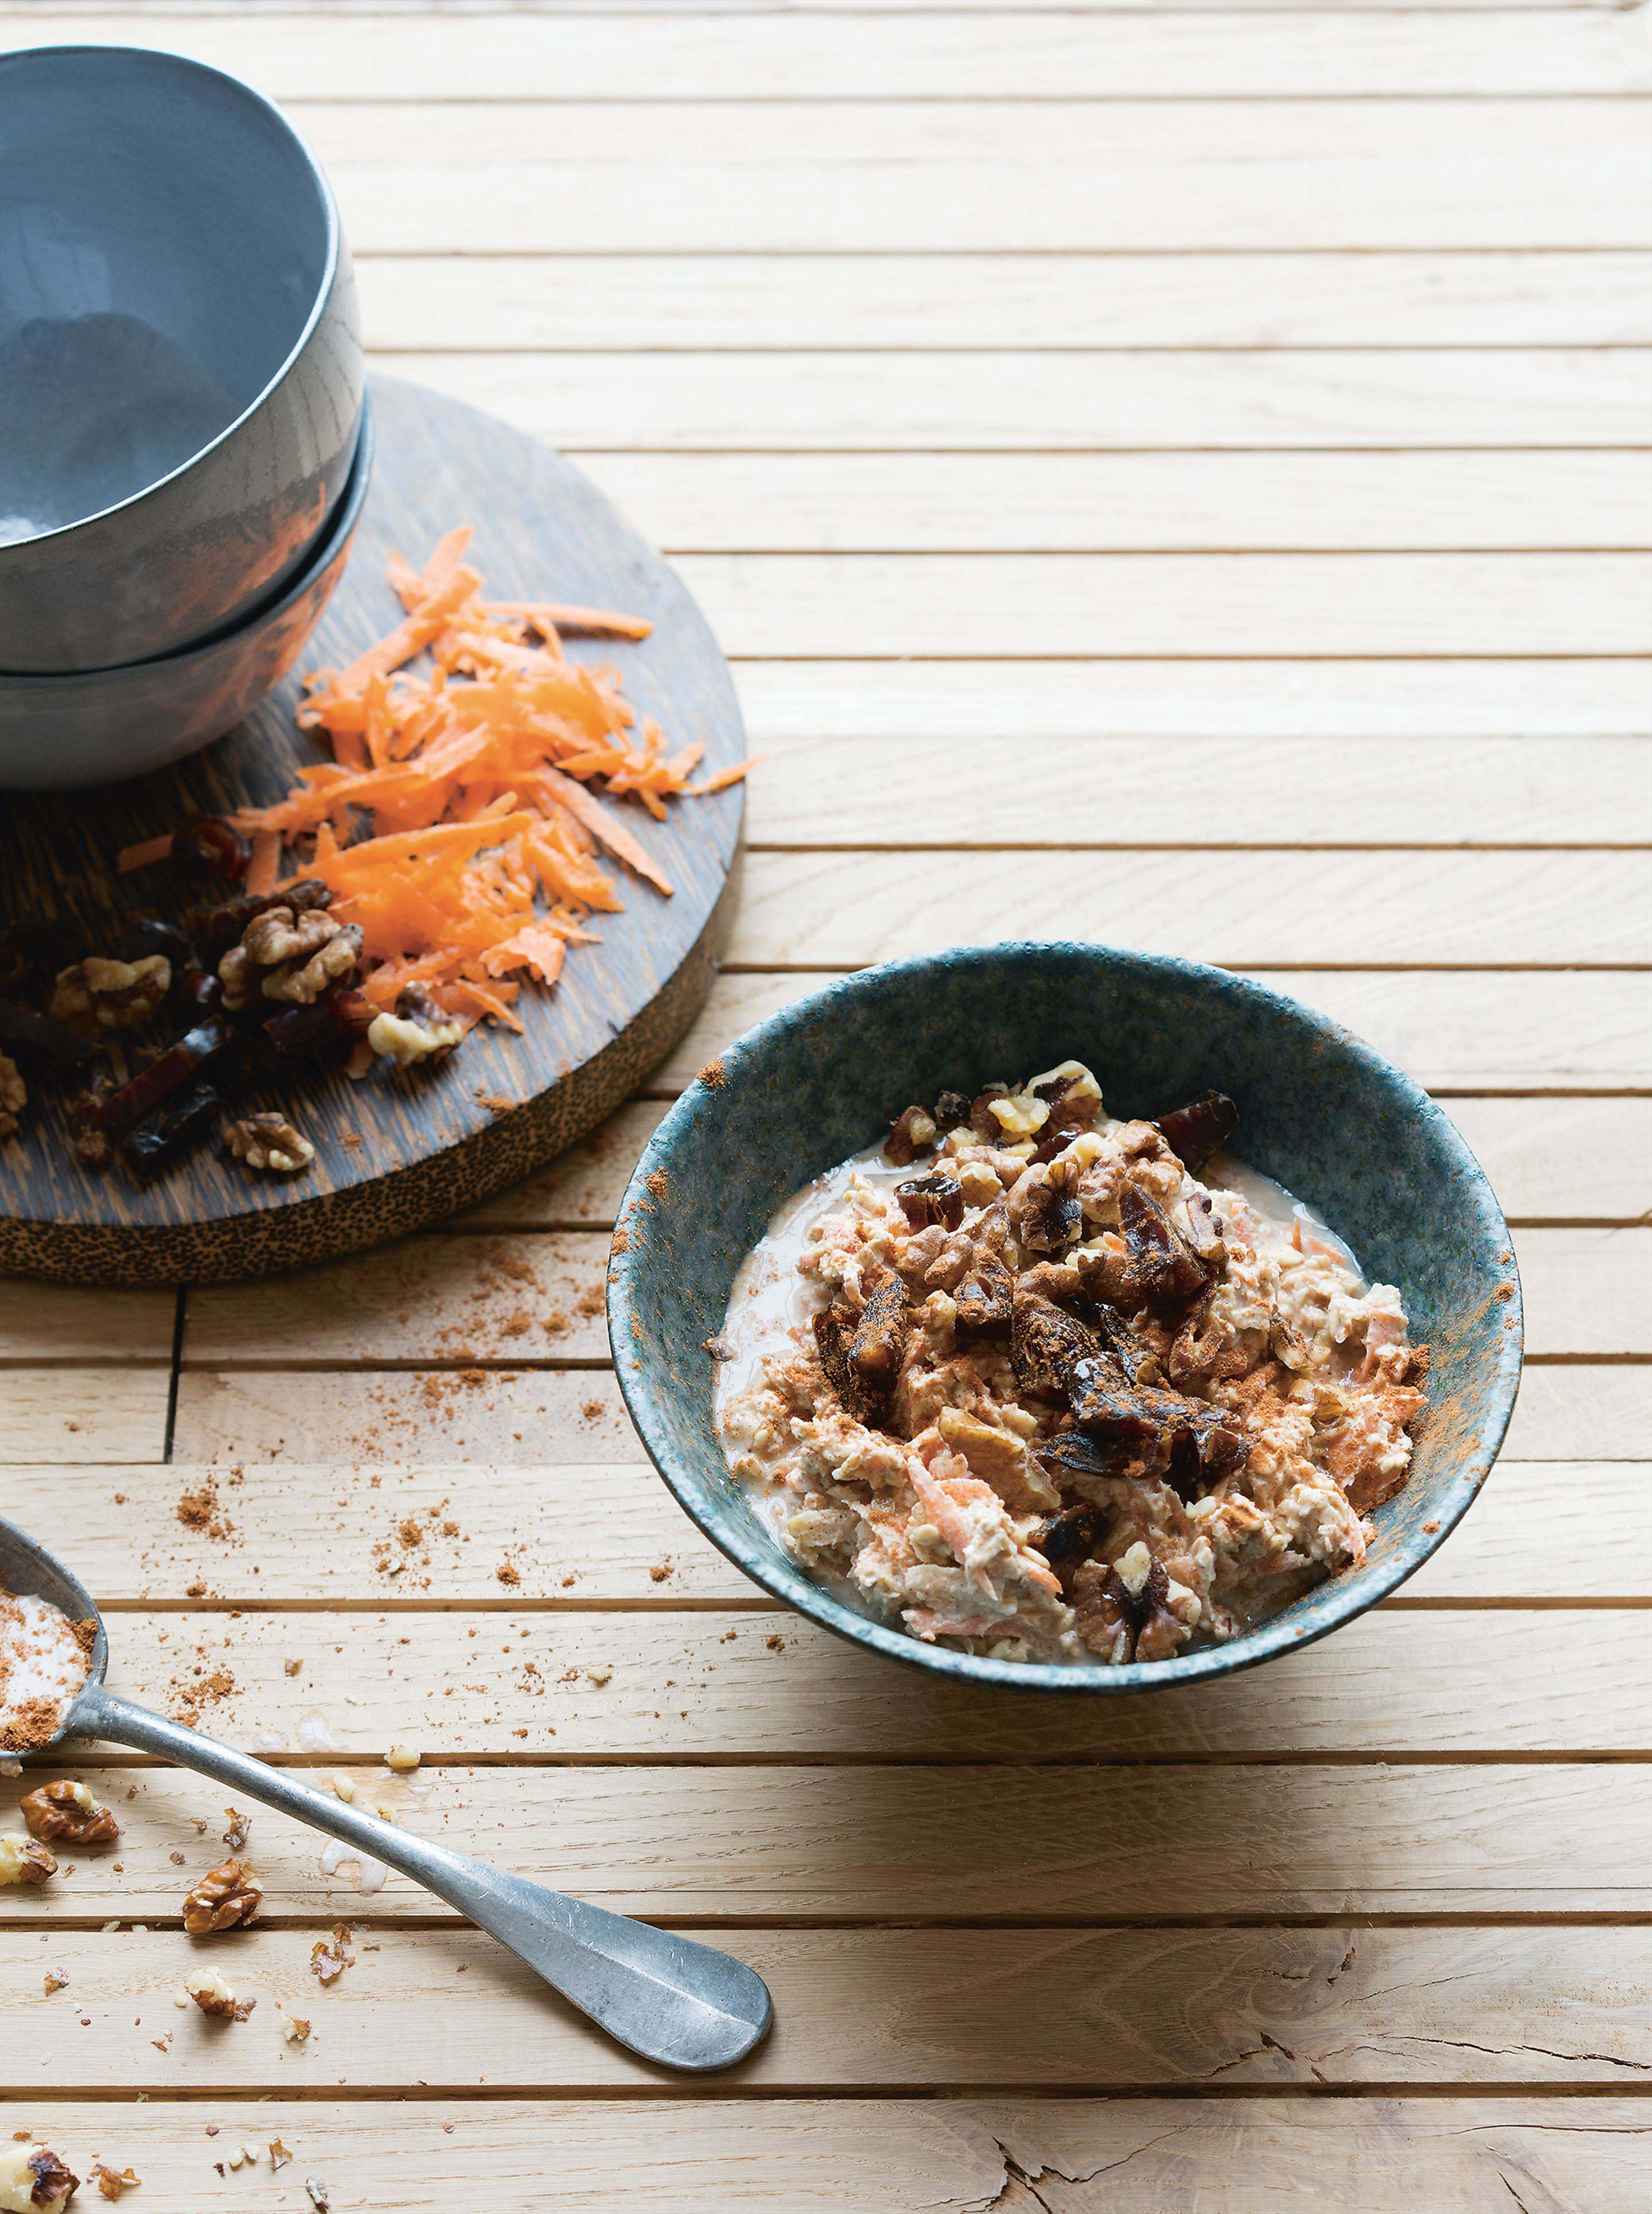 Spiced carrot bircher